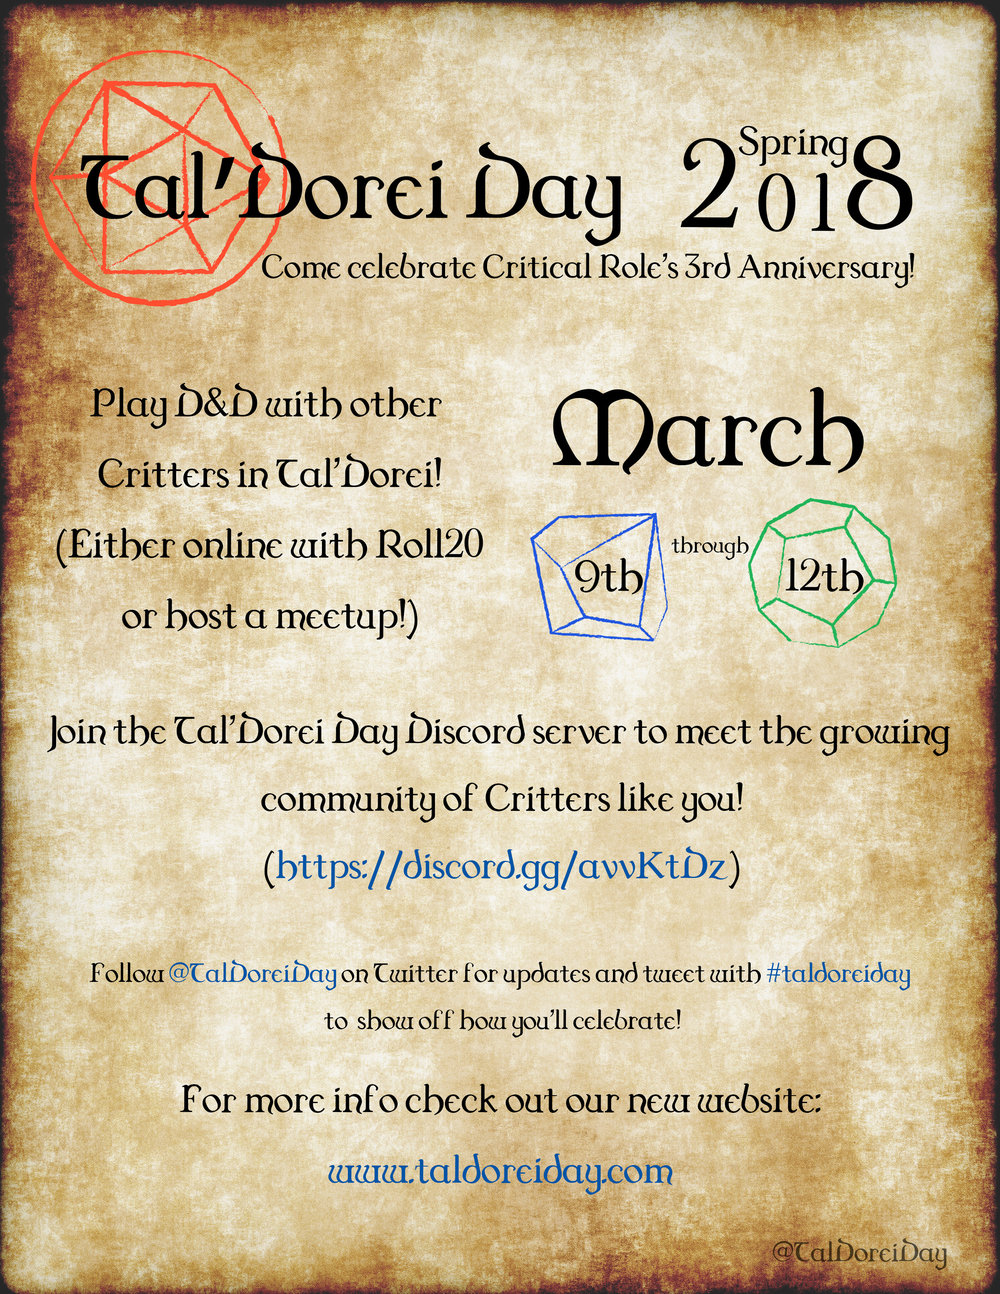 Tal'Dorei Day Spring 2018 Flyer